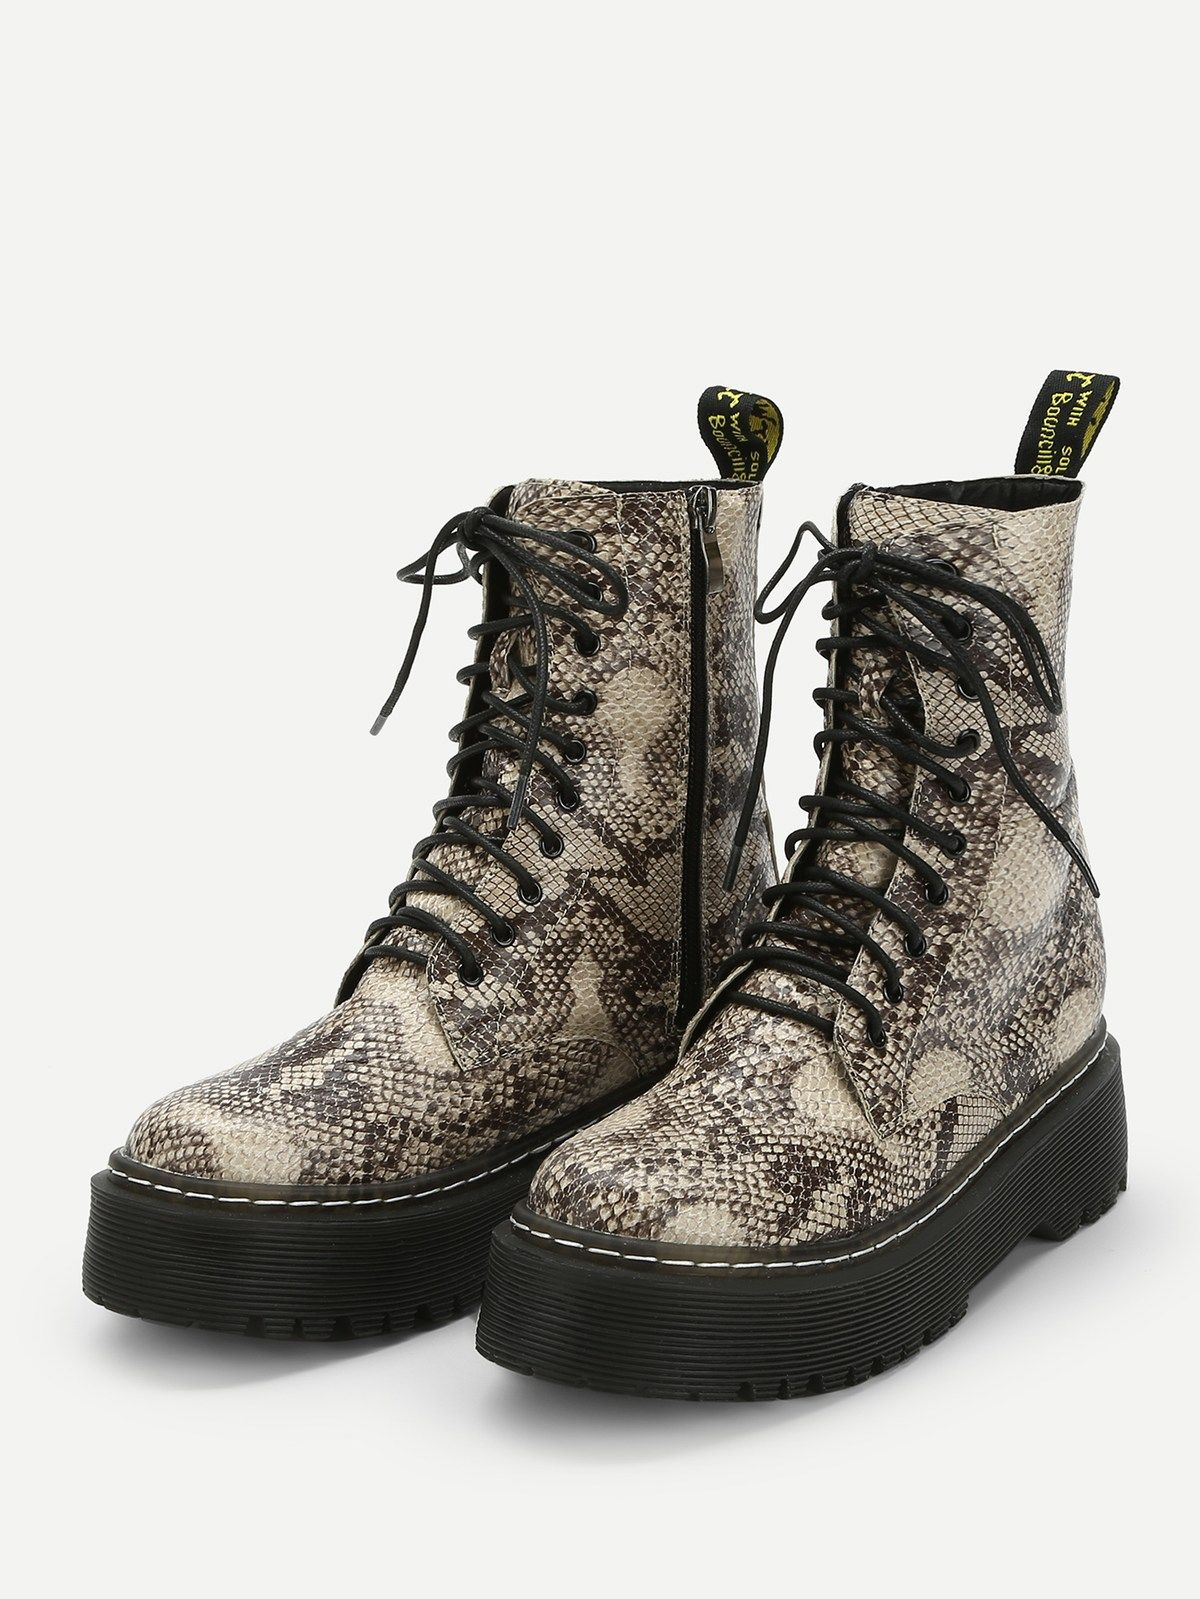 Snakeskin Pattern Lace-up BootsFor